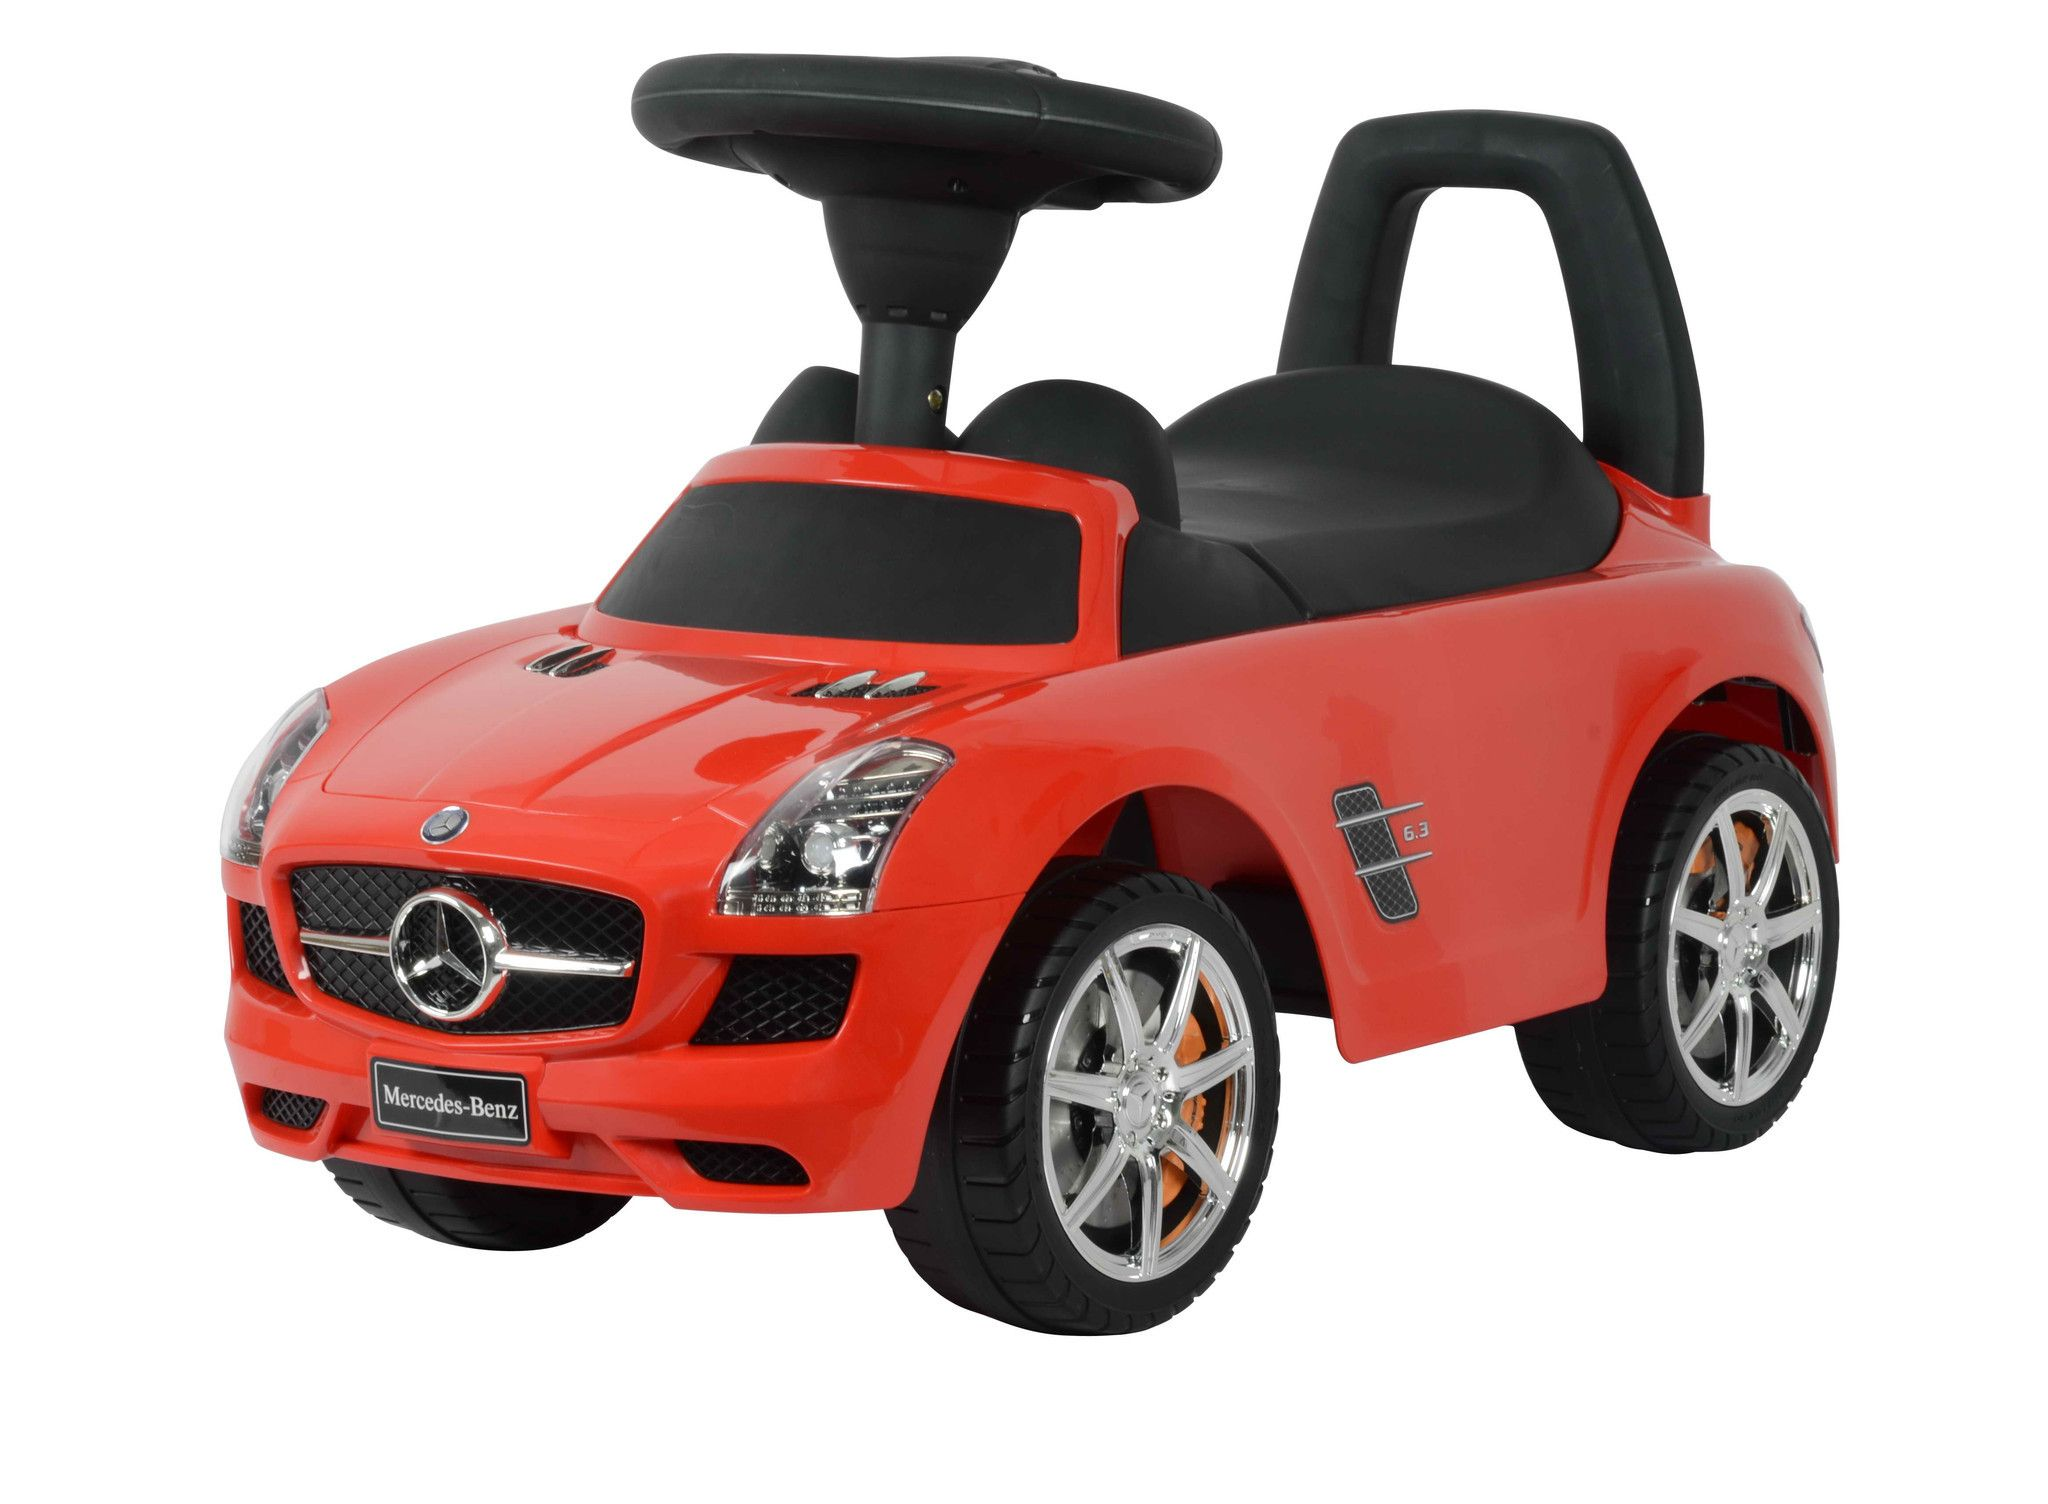 Toys car image  Mercedes Benz Licensed Manual Ride On Model RED  New toys